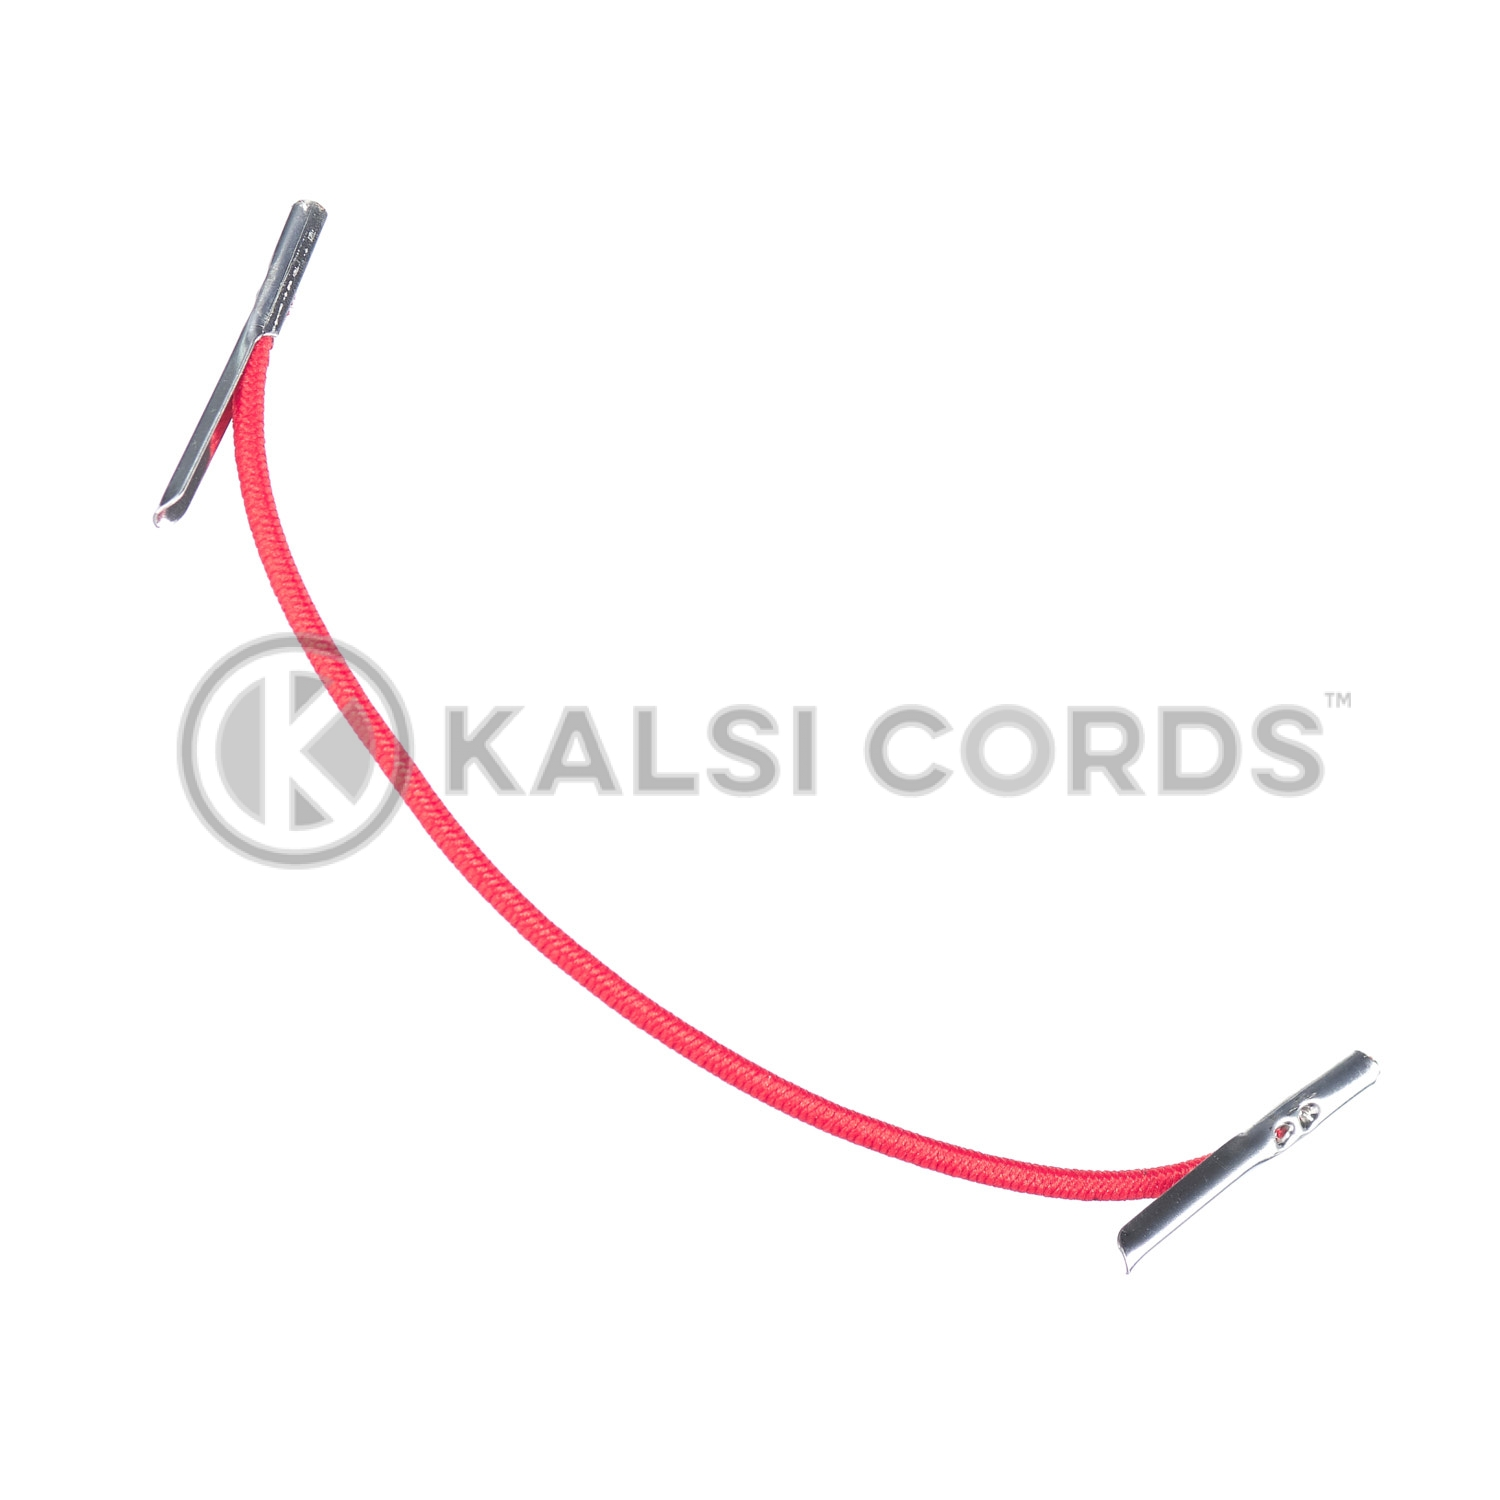 2mm Round Elastic Metal Tongue Tags Rose Madder Red MTNG TPE84 RMDR 1 Kalsi Cords